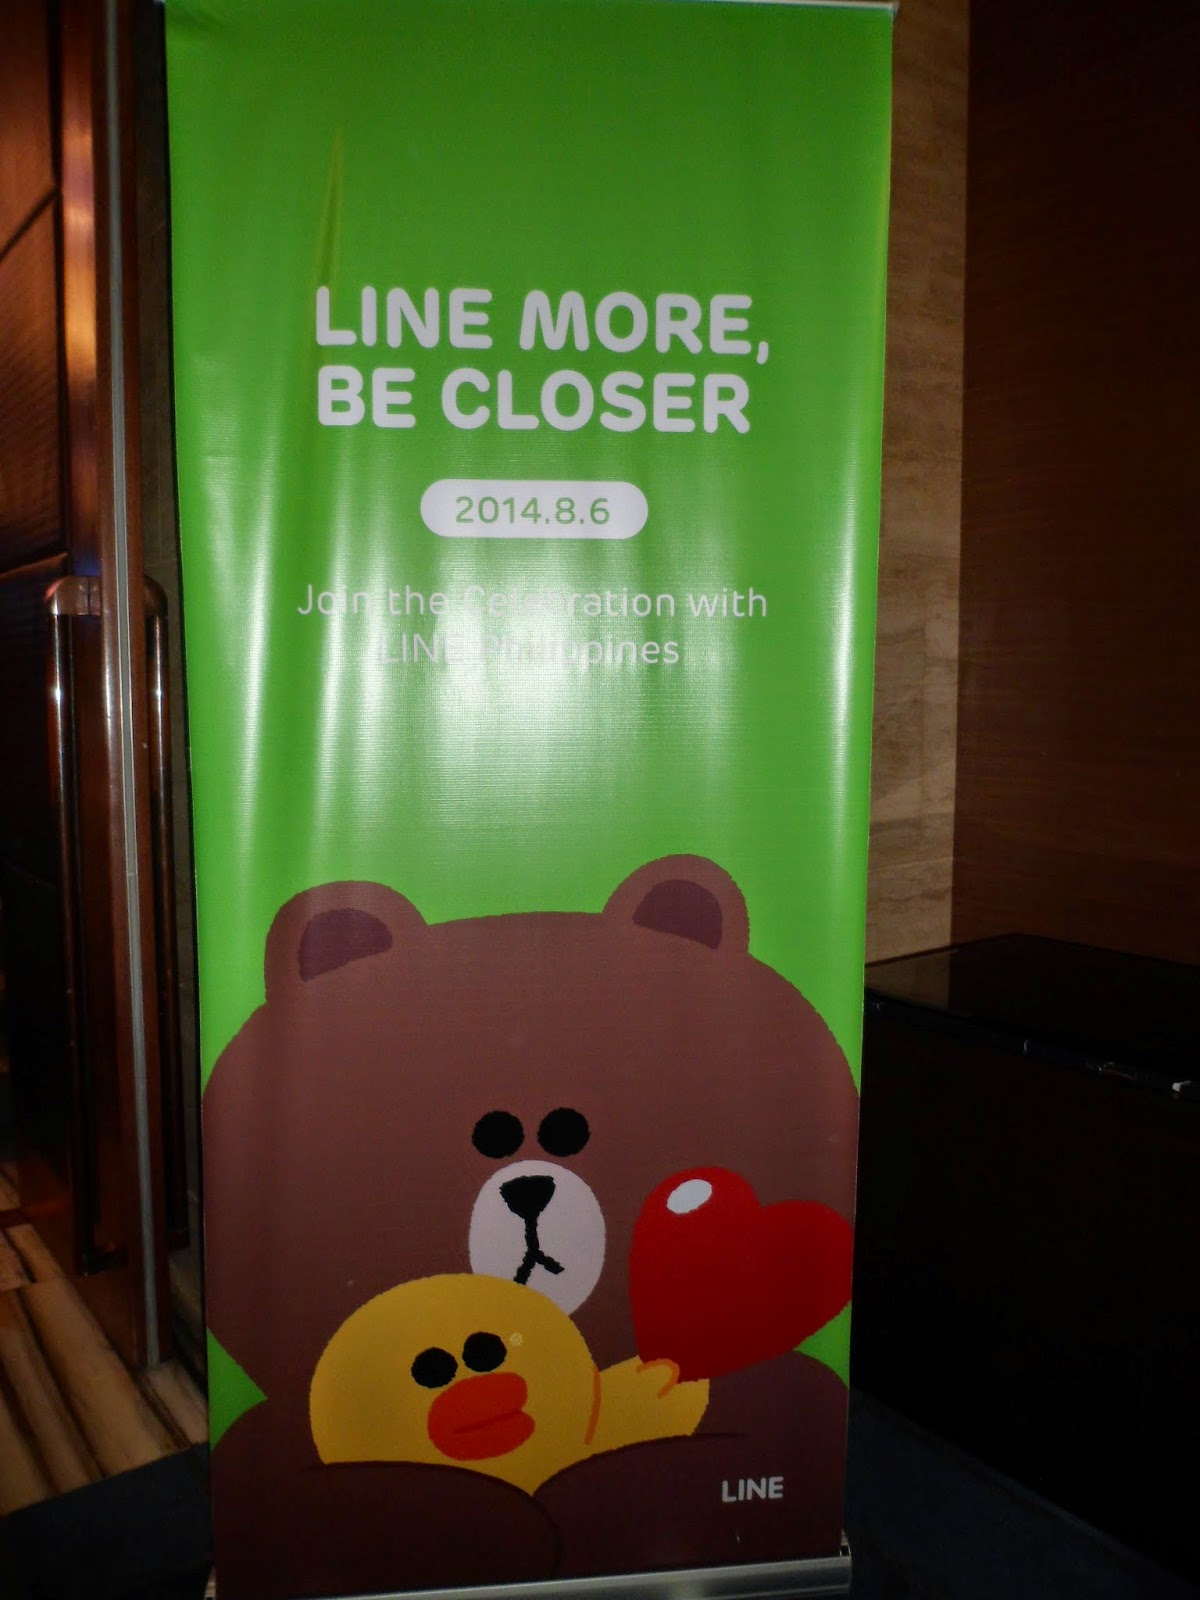 Get Closer To Your Loved Ones Through LINE Premium Call